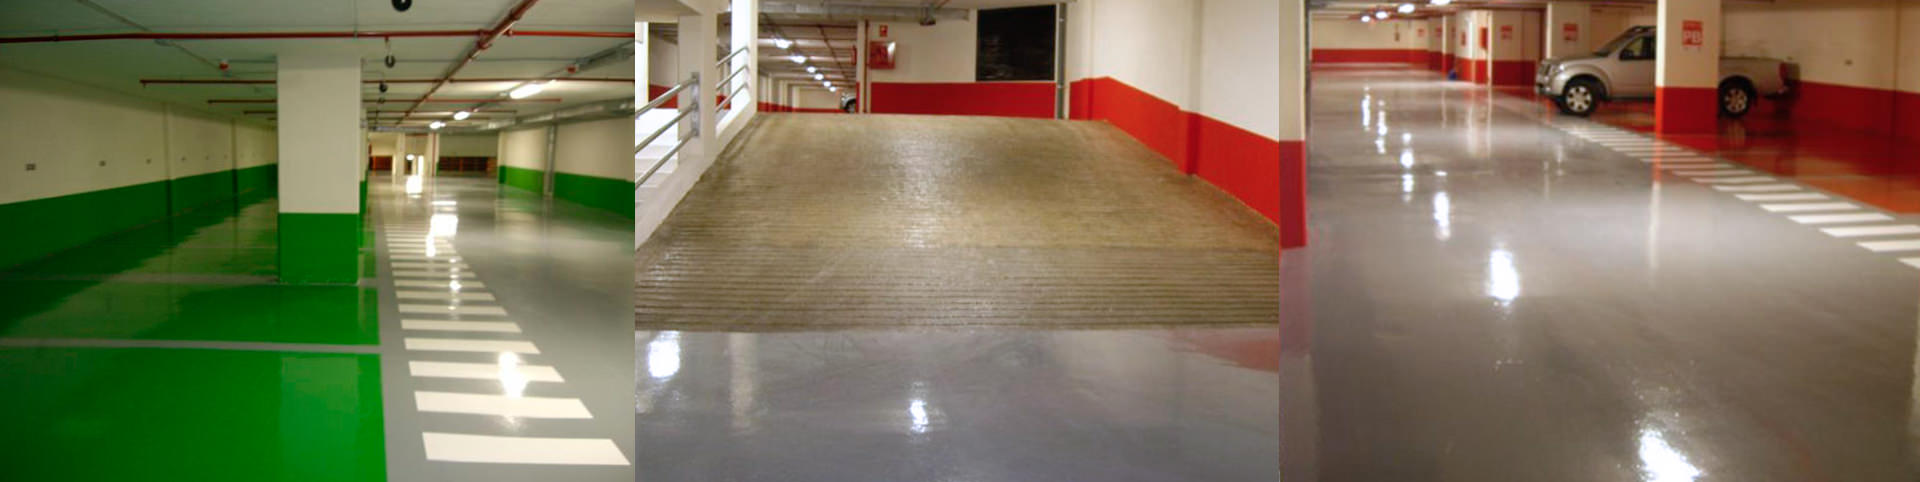 pavimento parking resina en alicante - tudepa